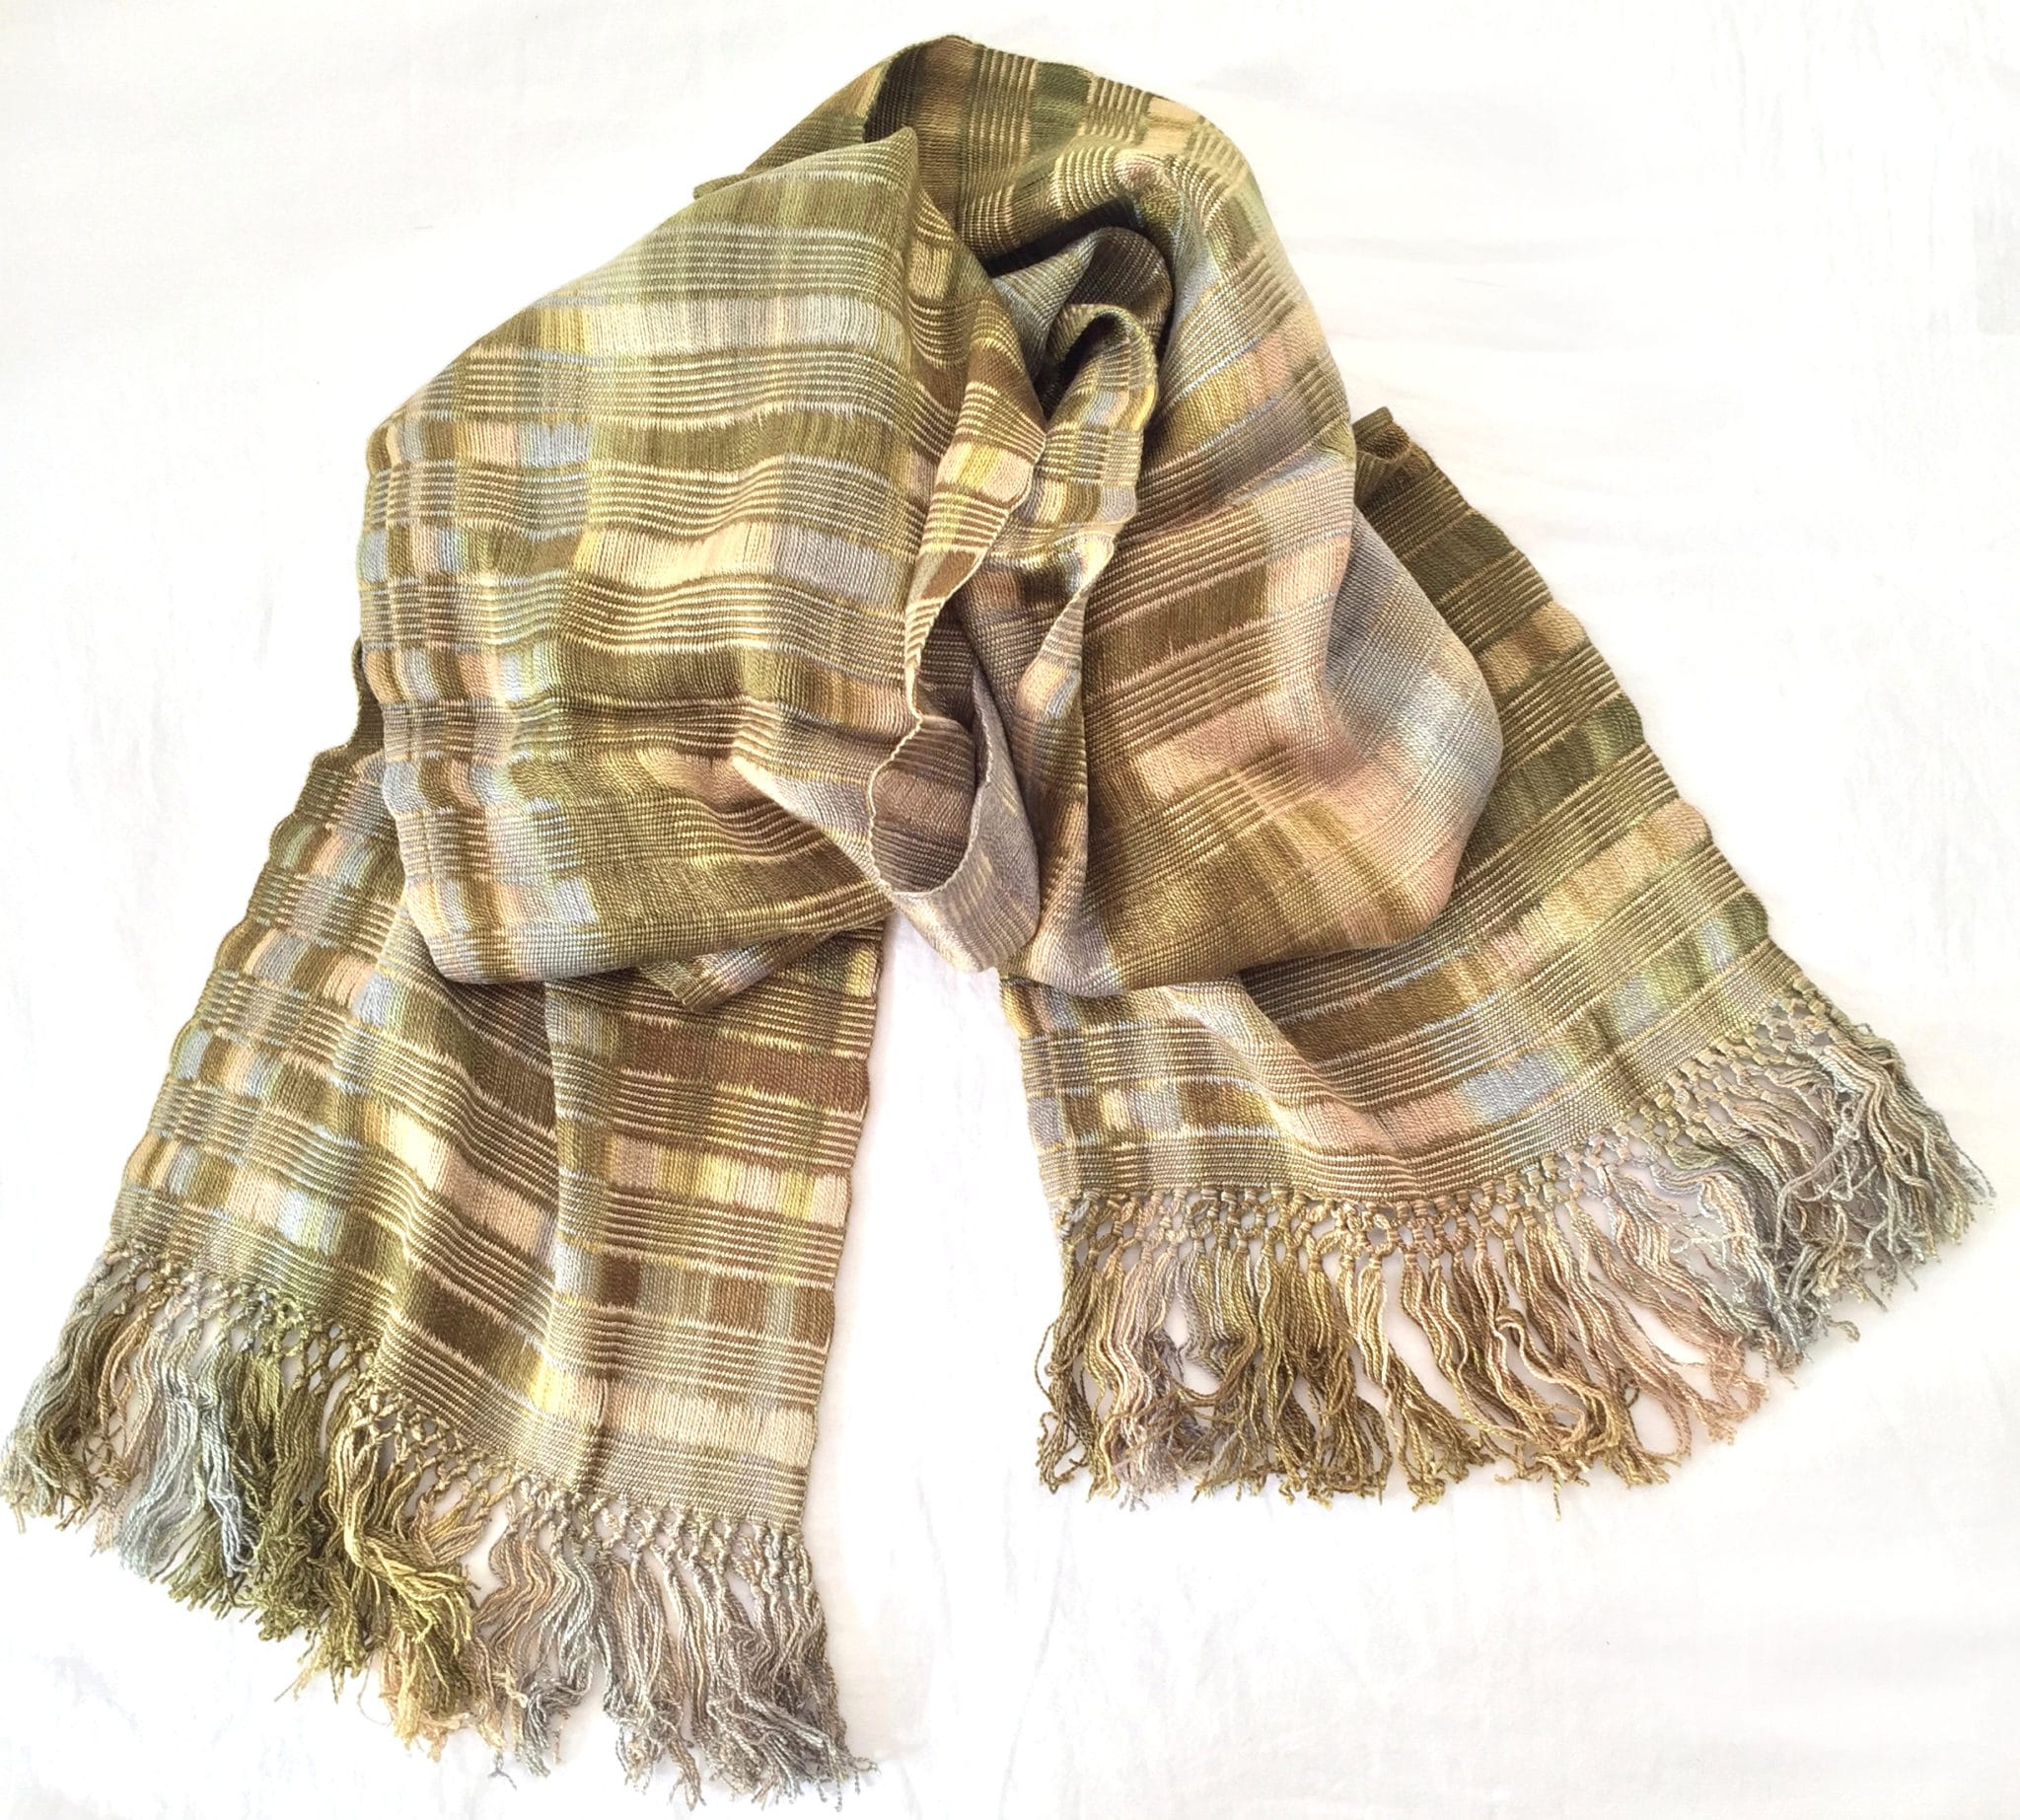 Beige, Olive - Lightweight Bamboo Handwoven Scarf 8 x 68